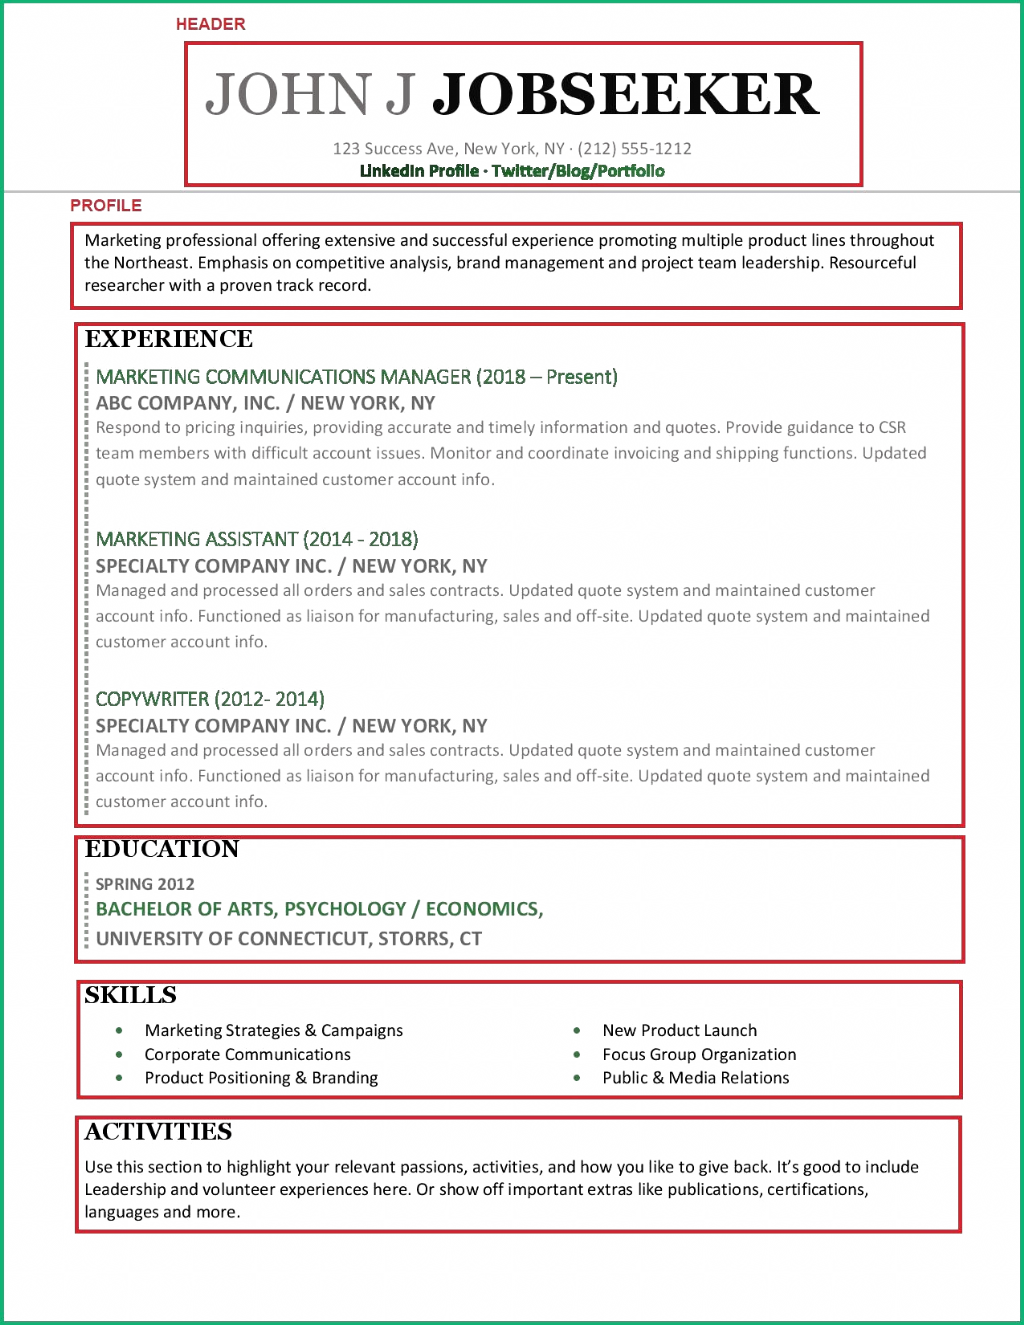 pin on templates profile objective for resume examples cv docx digital marketing sample pdf